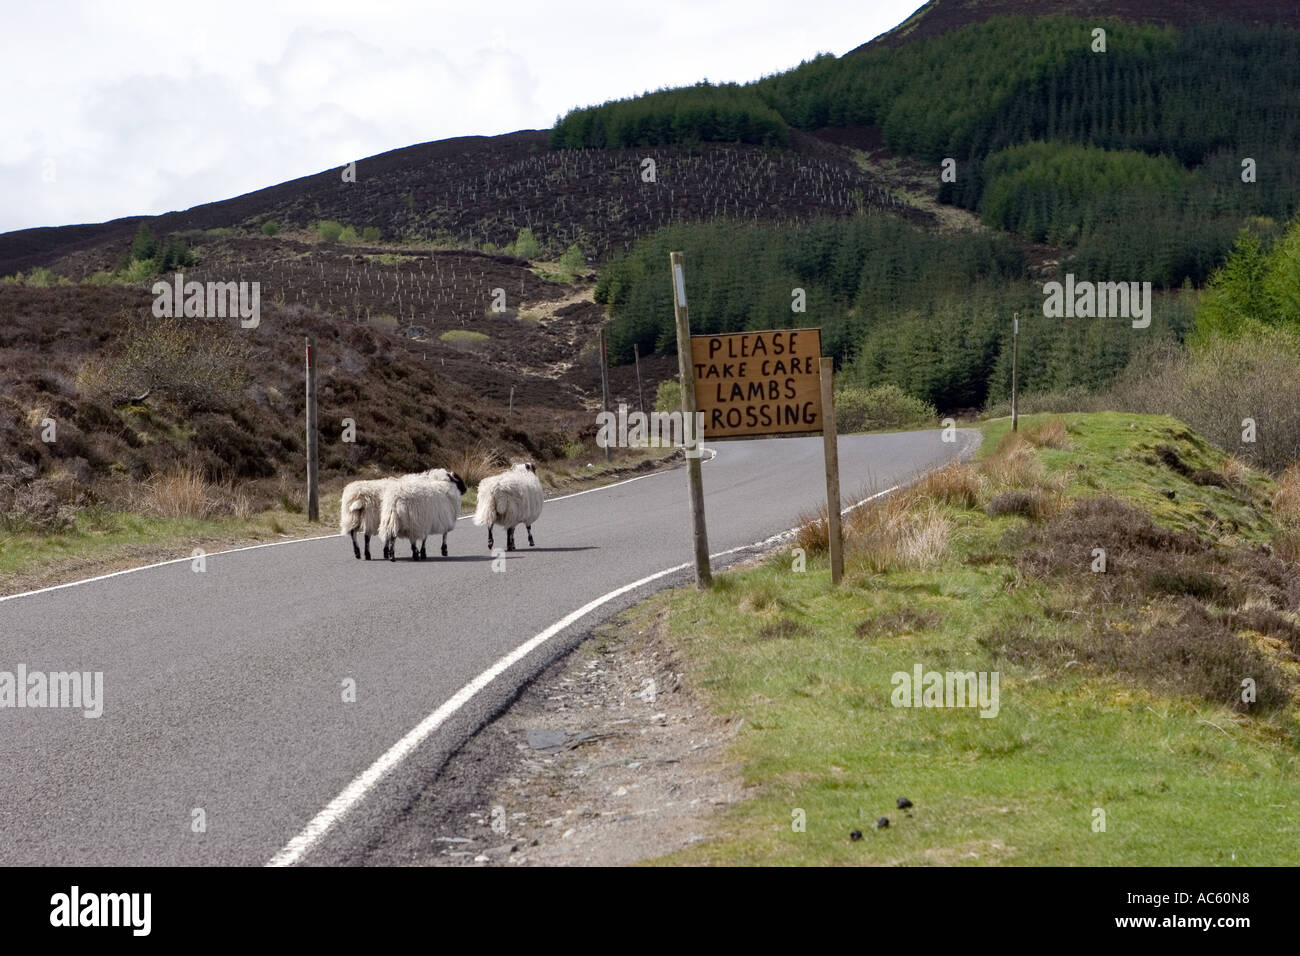 'Please take care Lambs crossing' single track country road,  Pitlochry area Perthshire Scotland uk. - Stock Image